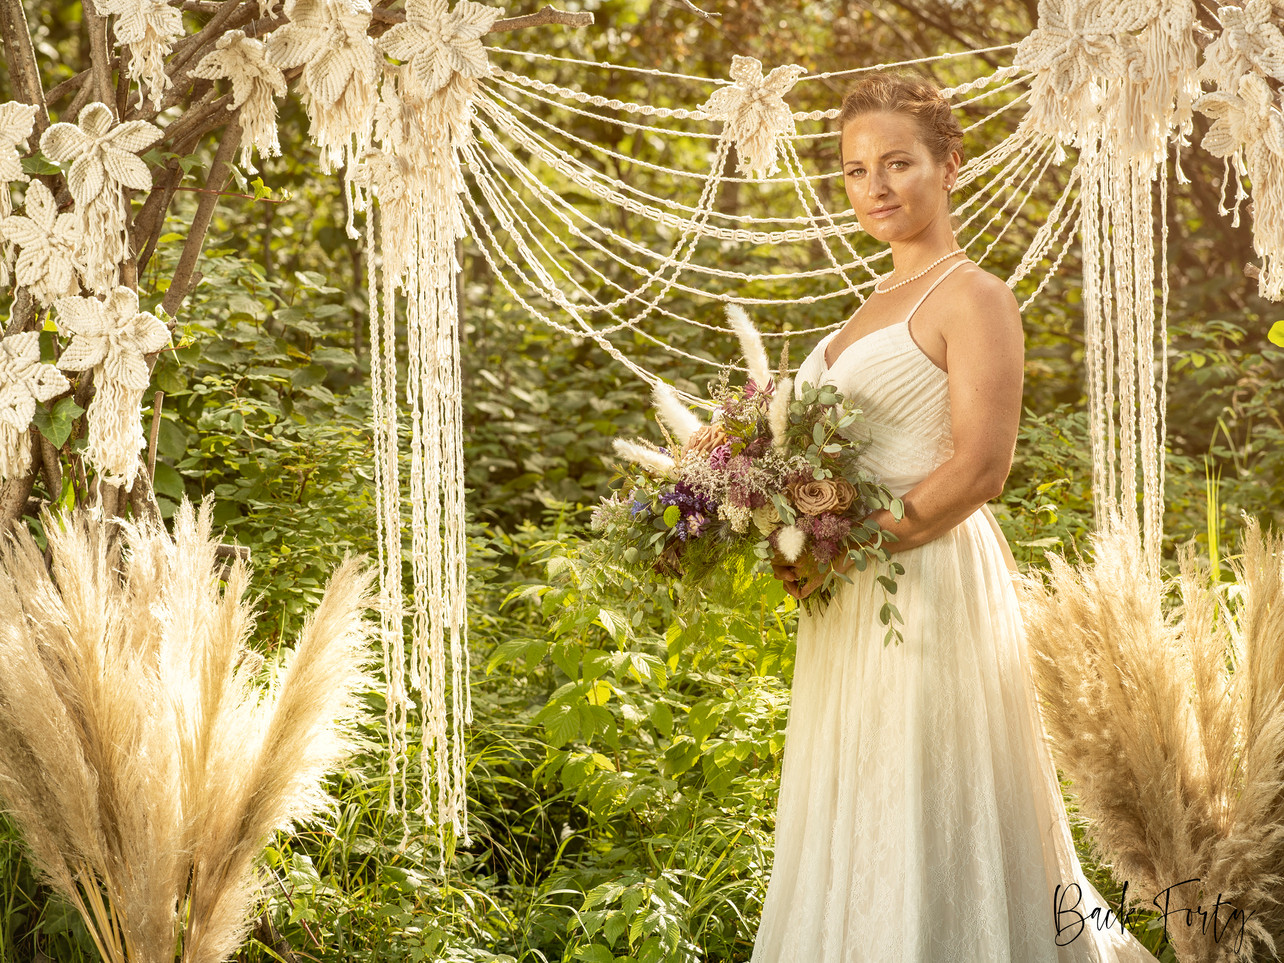 Model - Jennifer Berquist, Location - Woodland and Wildflowers Wedding Venue